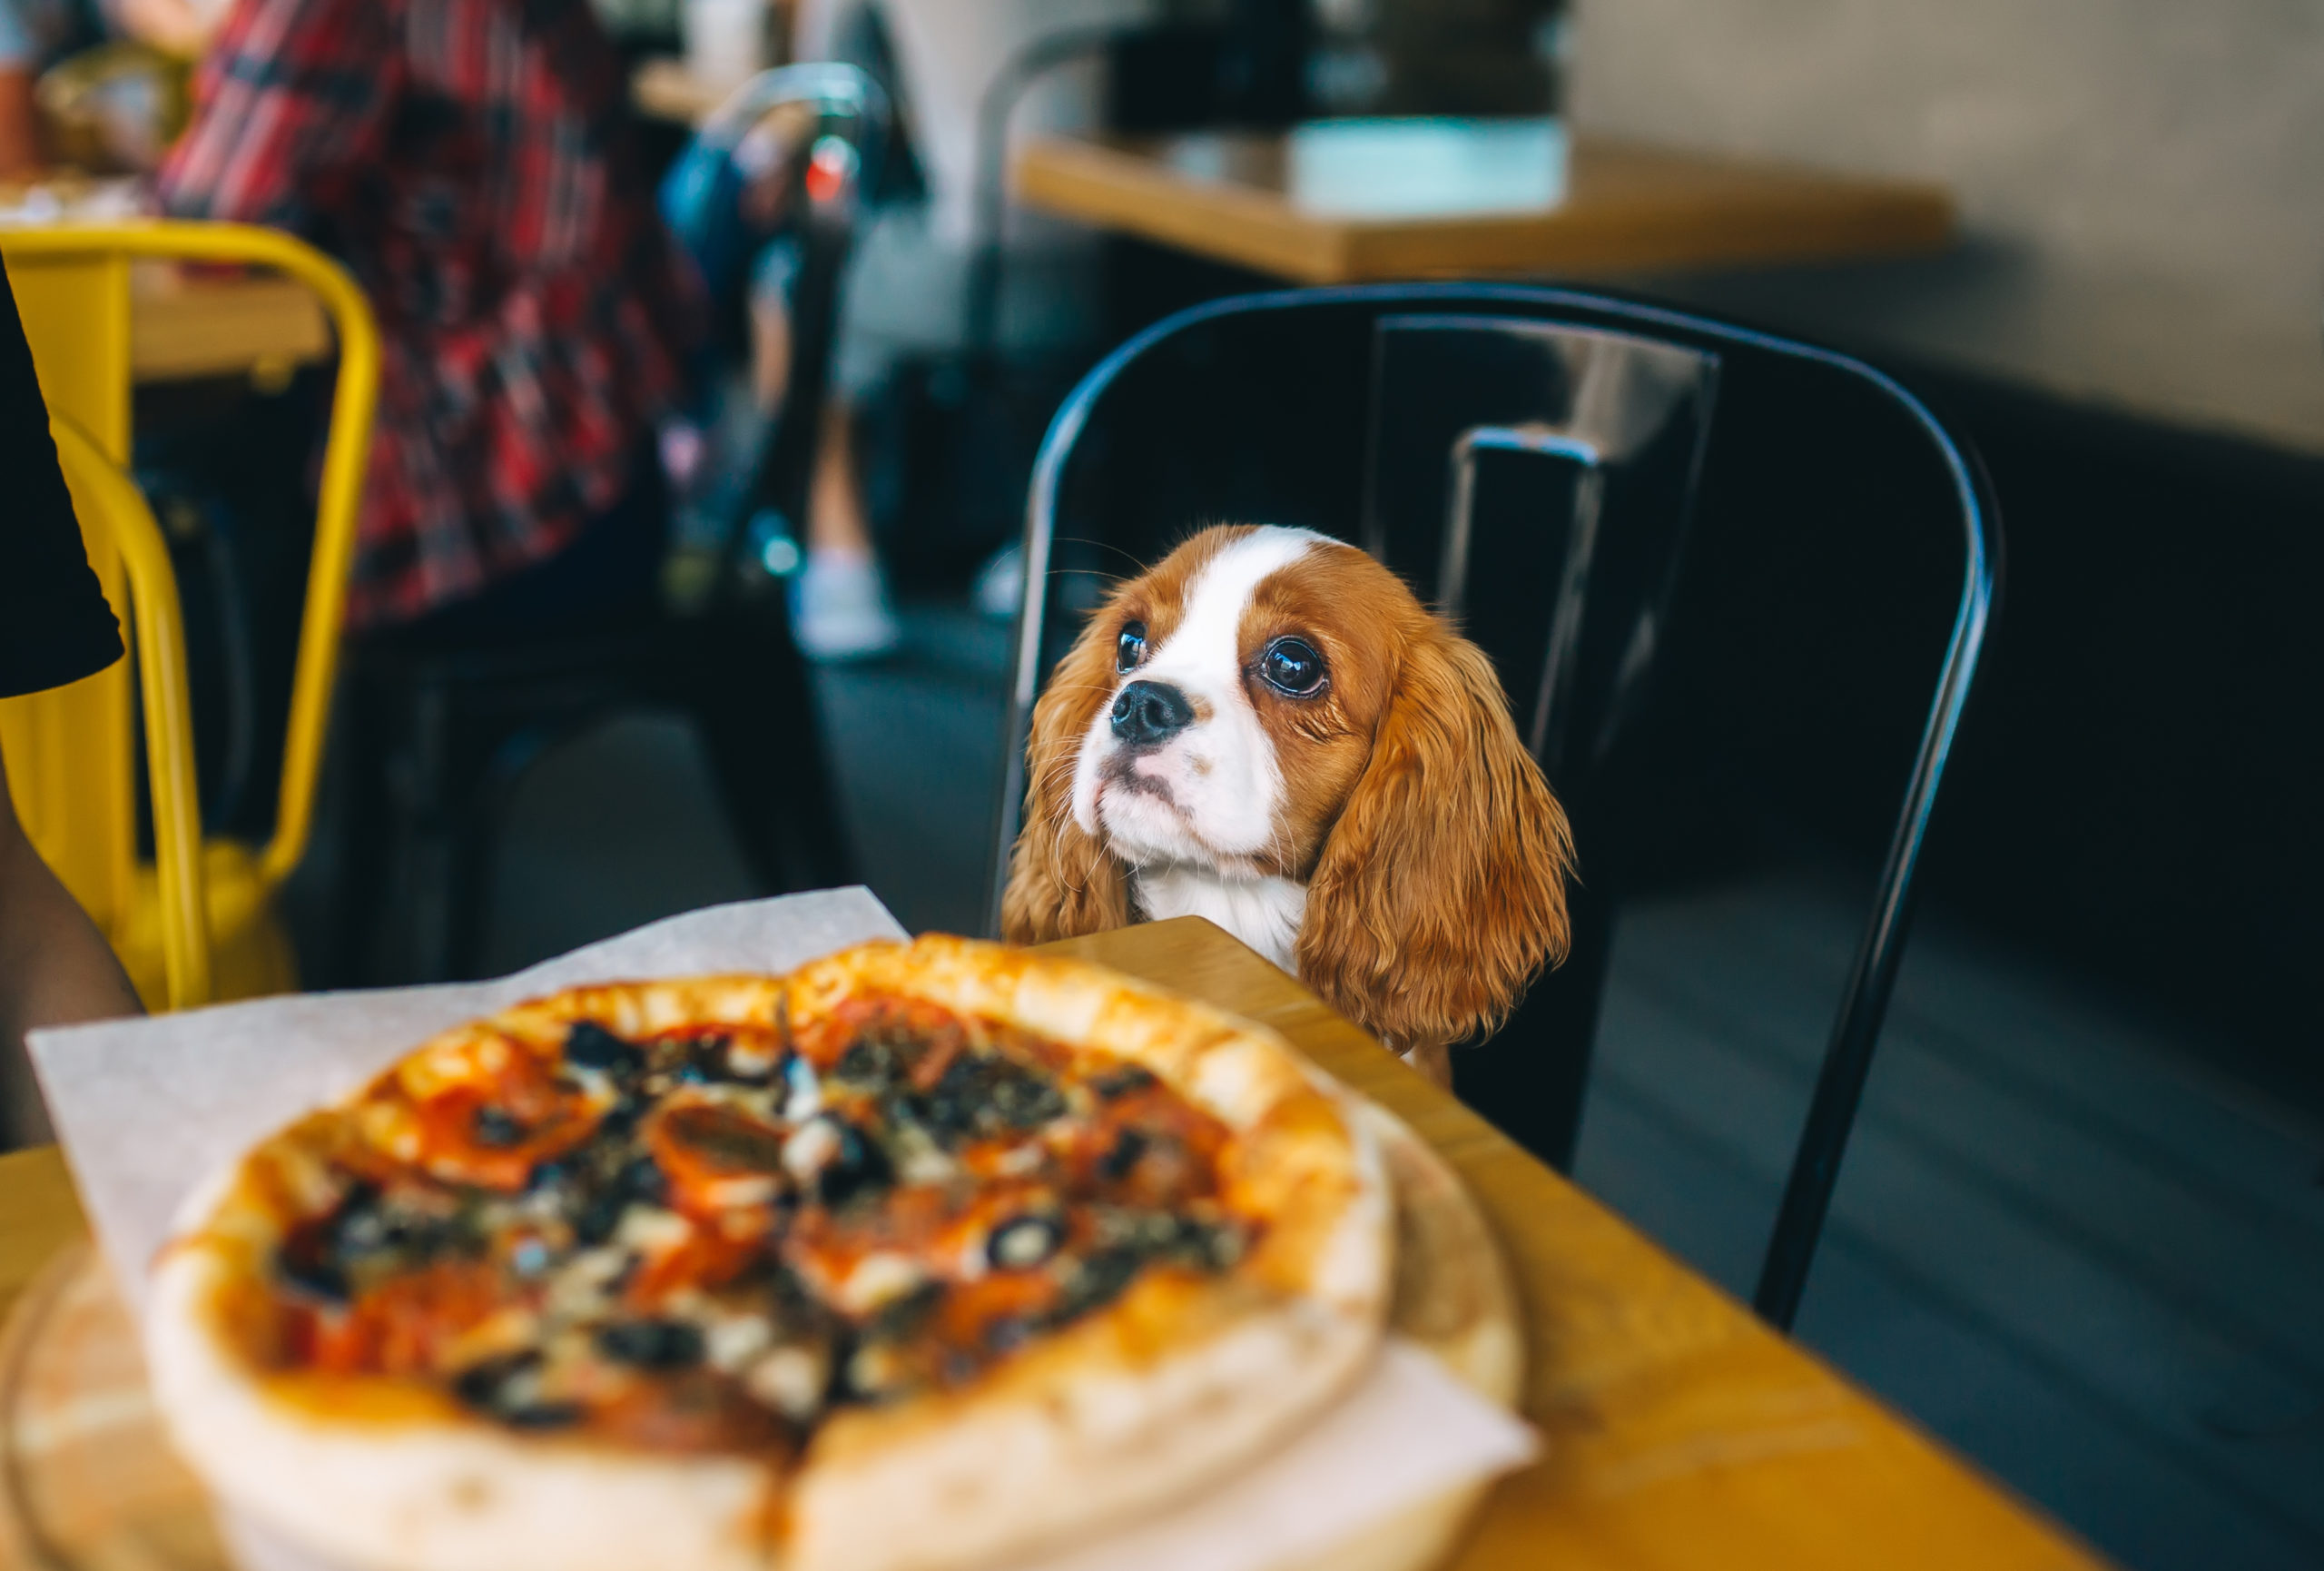 Puppy sitting at the table in front of pizza | dog-friendly restaurants in Arlington, VA